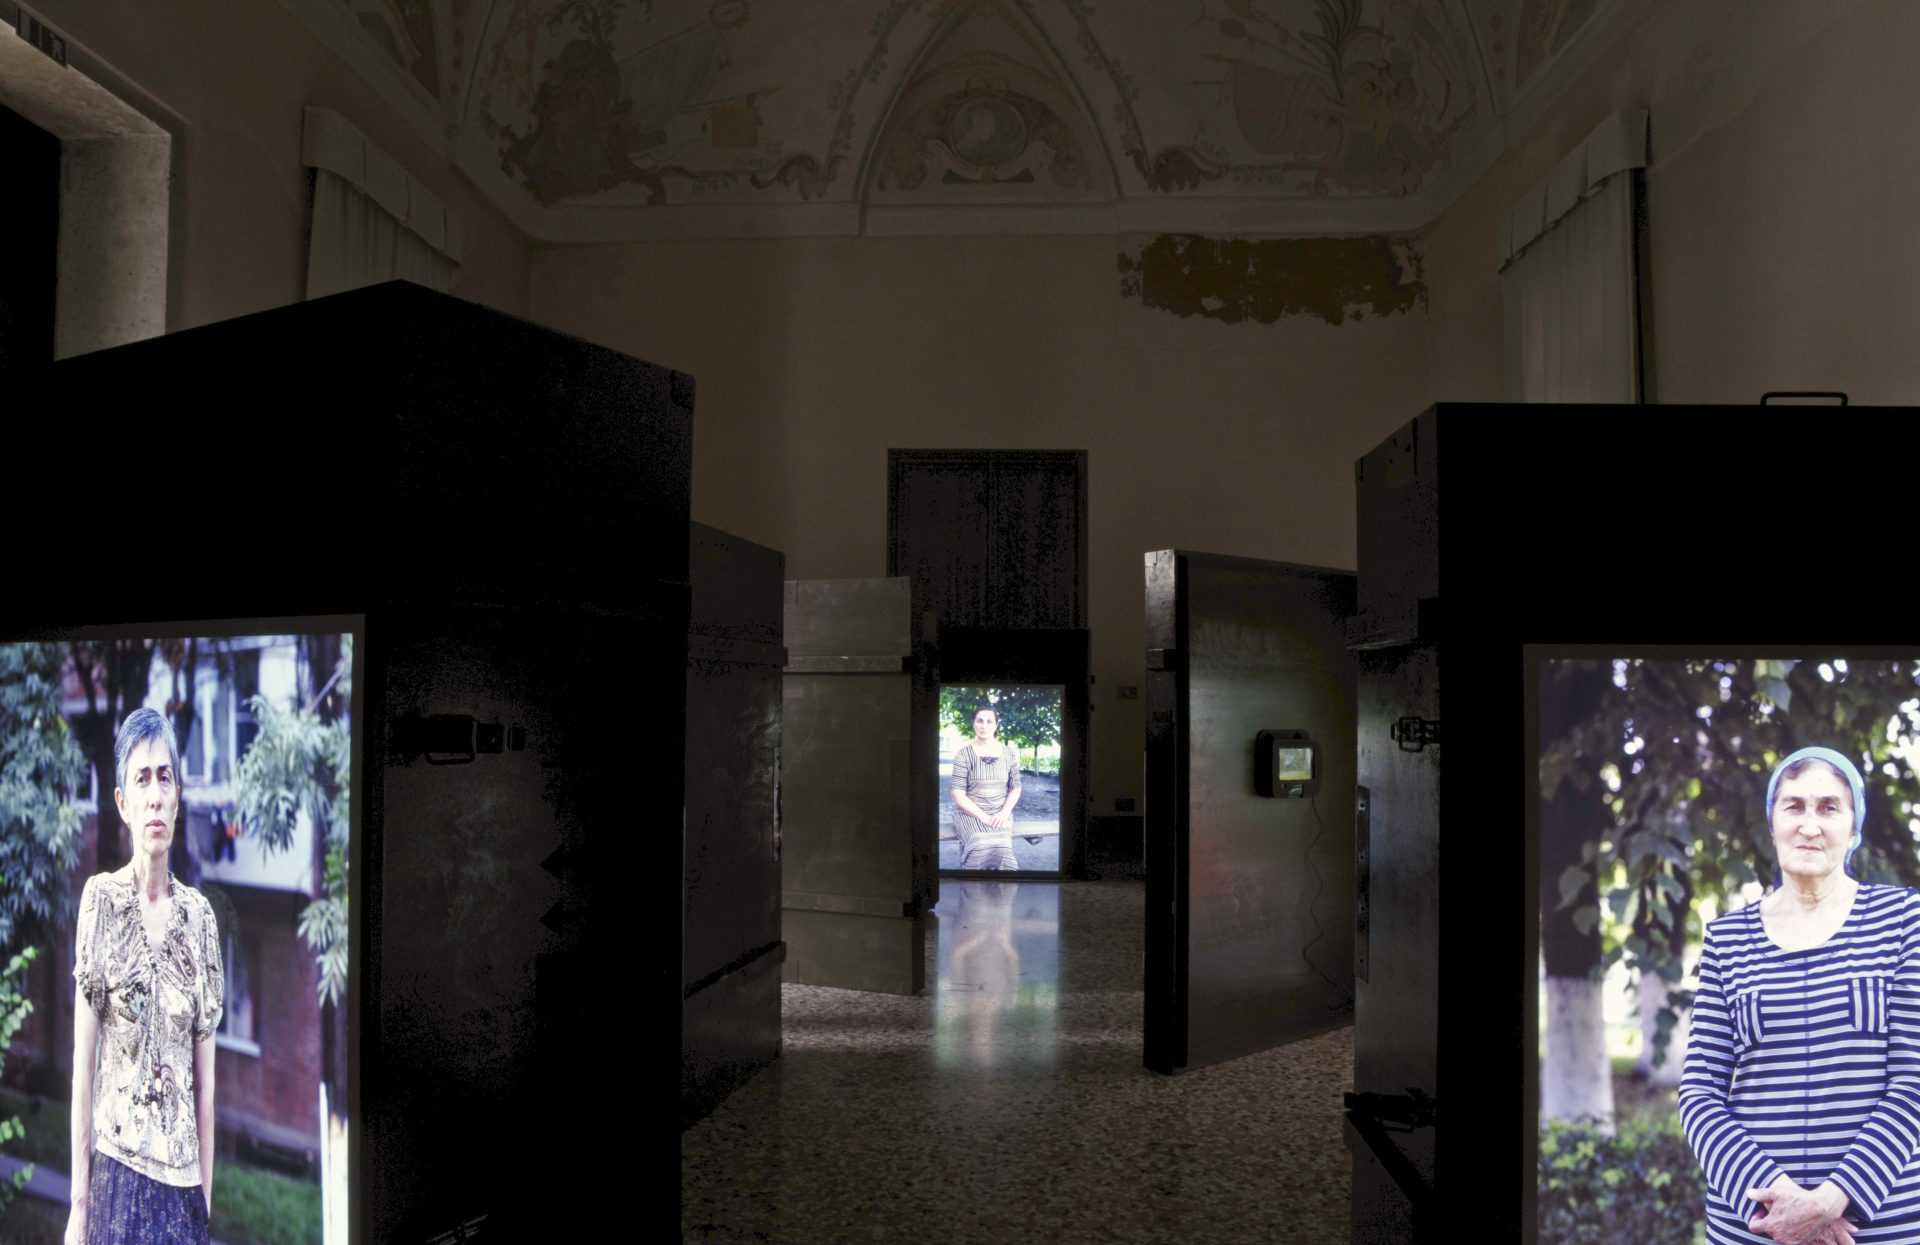 Anastasia Khoroshilova, Starie Novosti (Old News), Biblioteca Zenobiana del Temanza, Venice , collateral event of the 54th International Art Exhibition, 2011